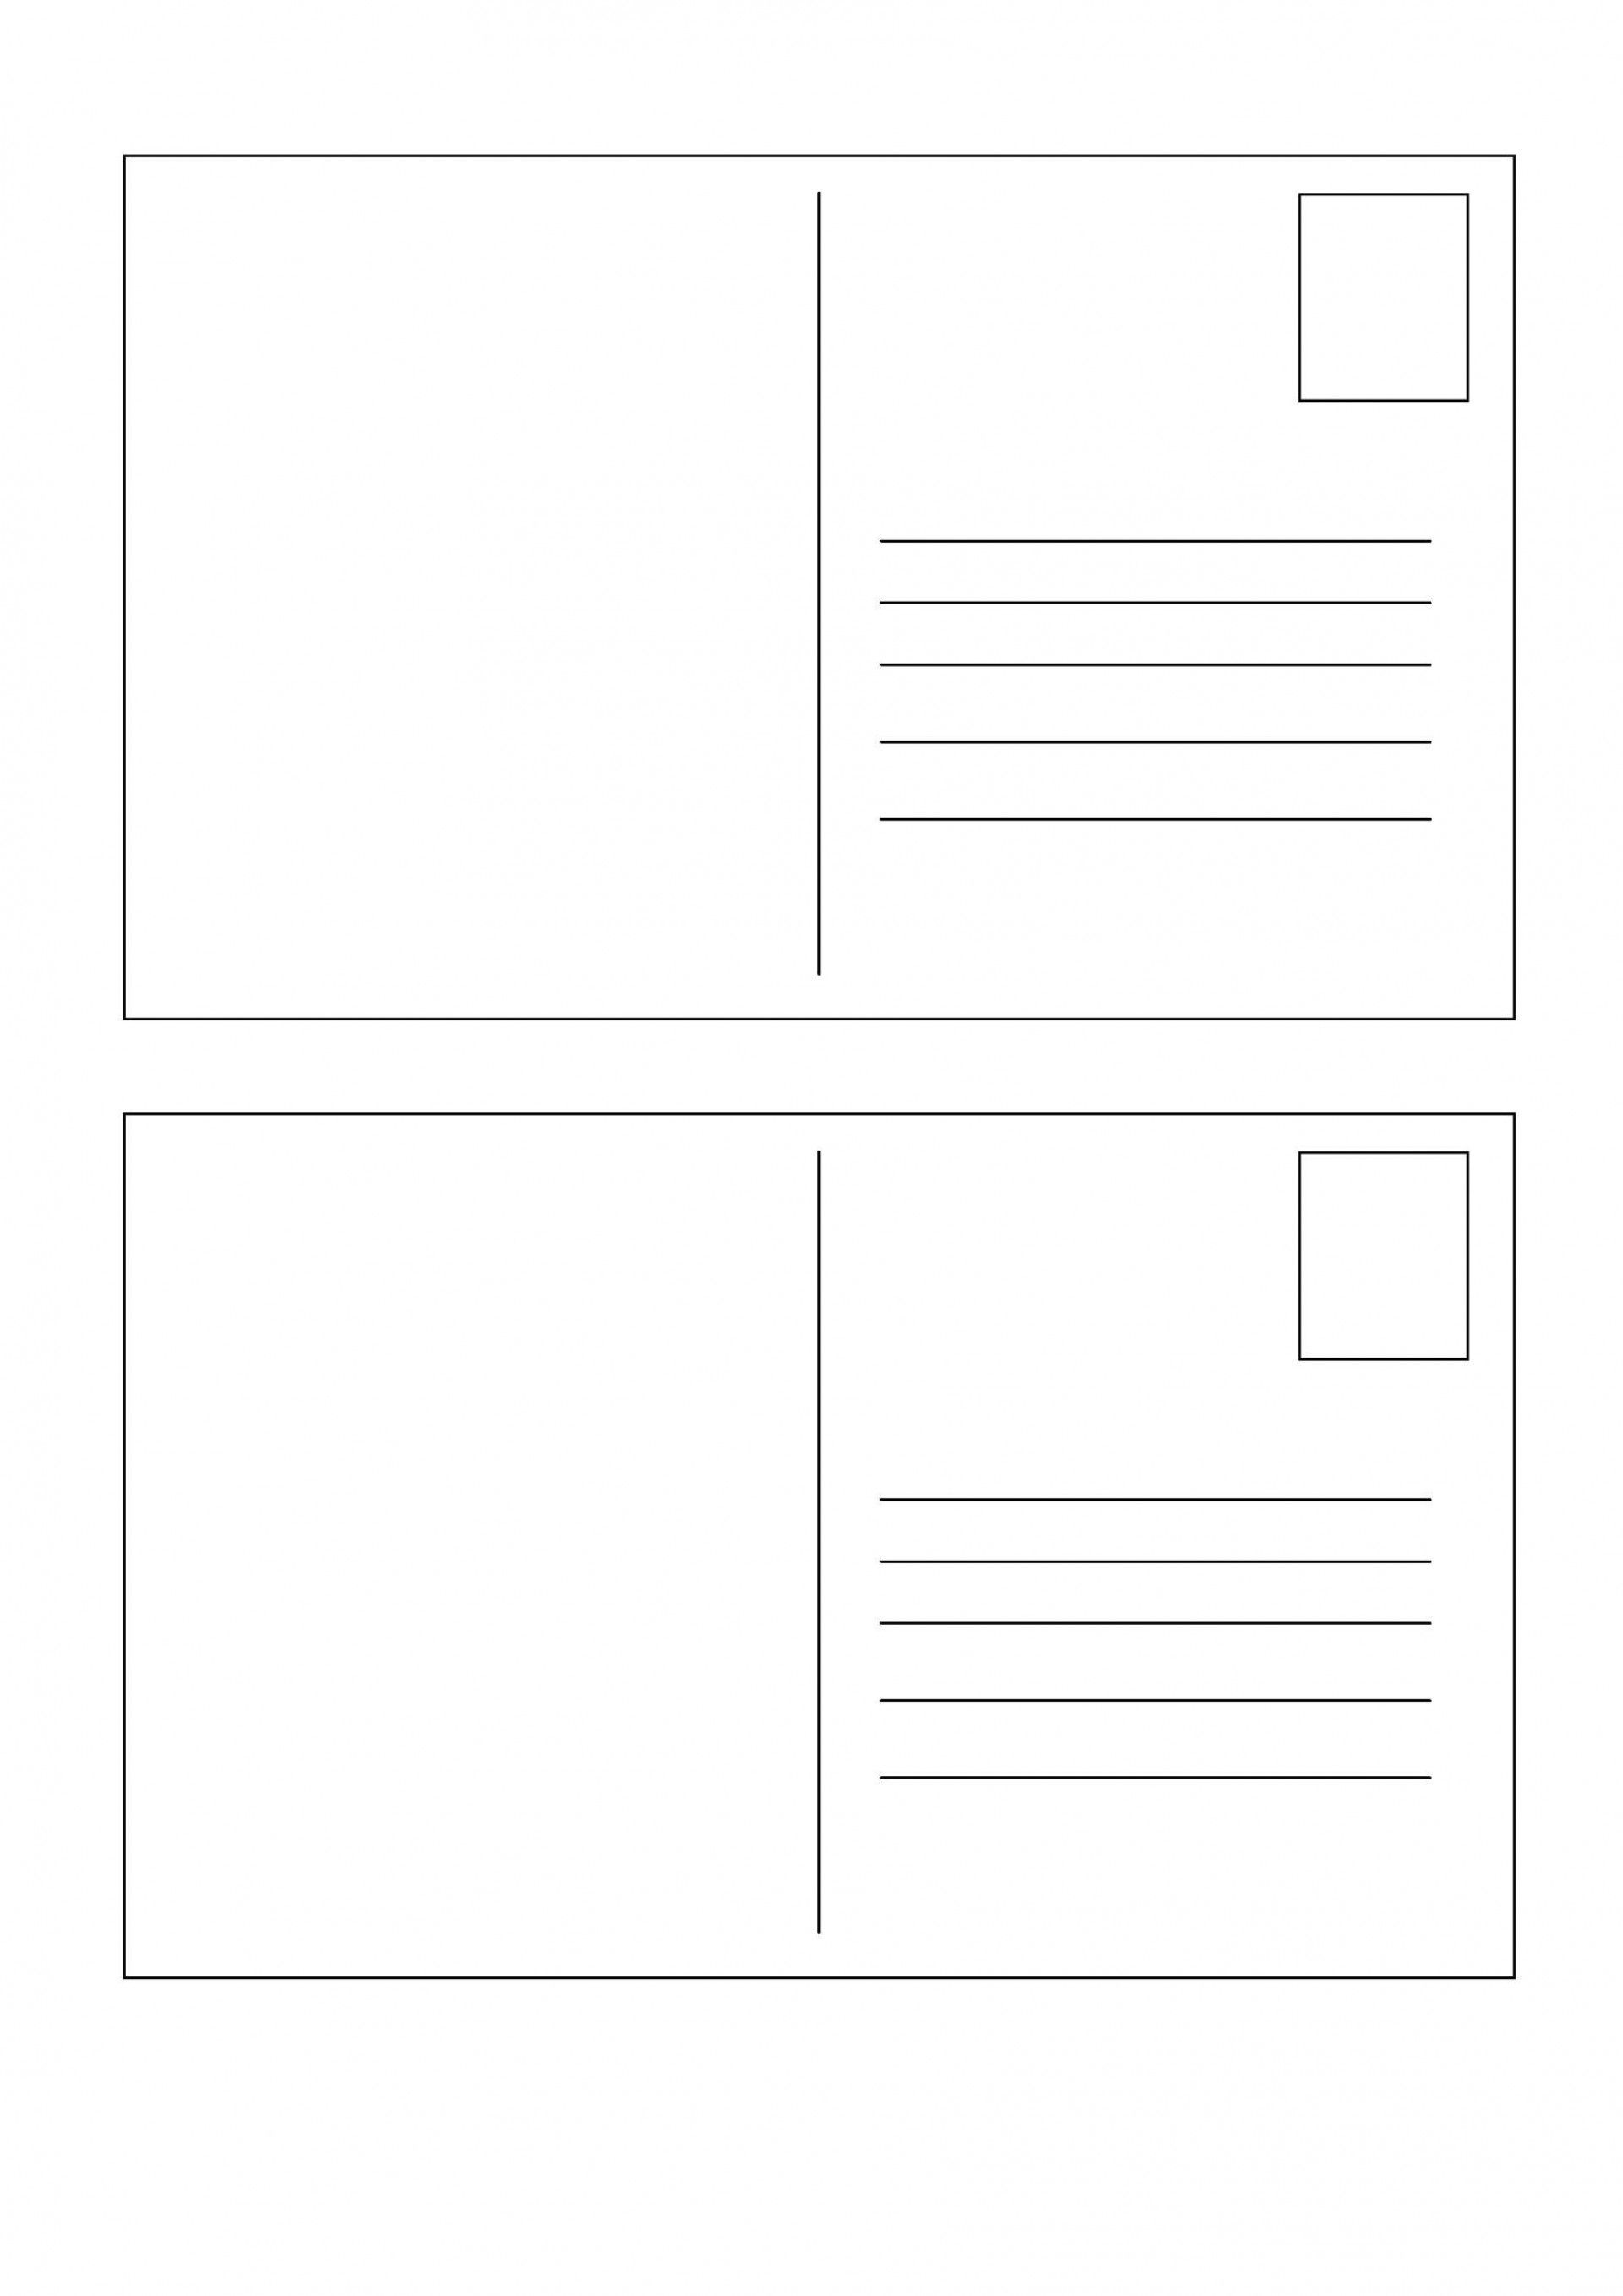 004 Dreaded Rsvp Postcard Template For Word Example Full